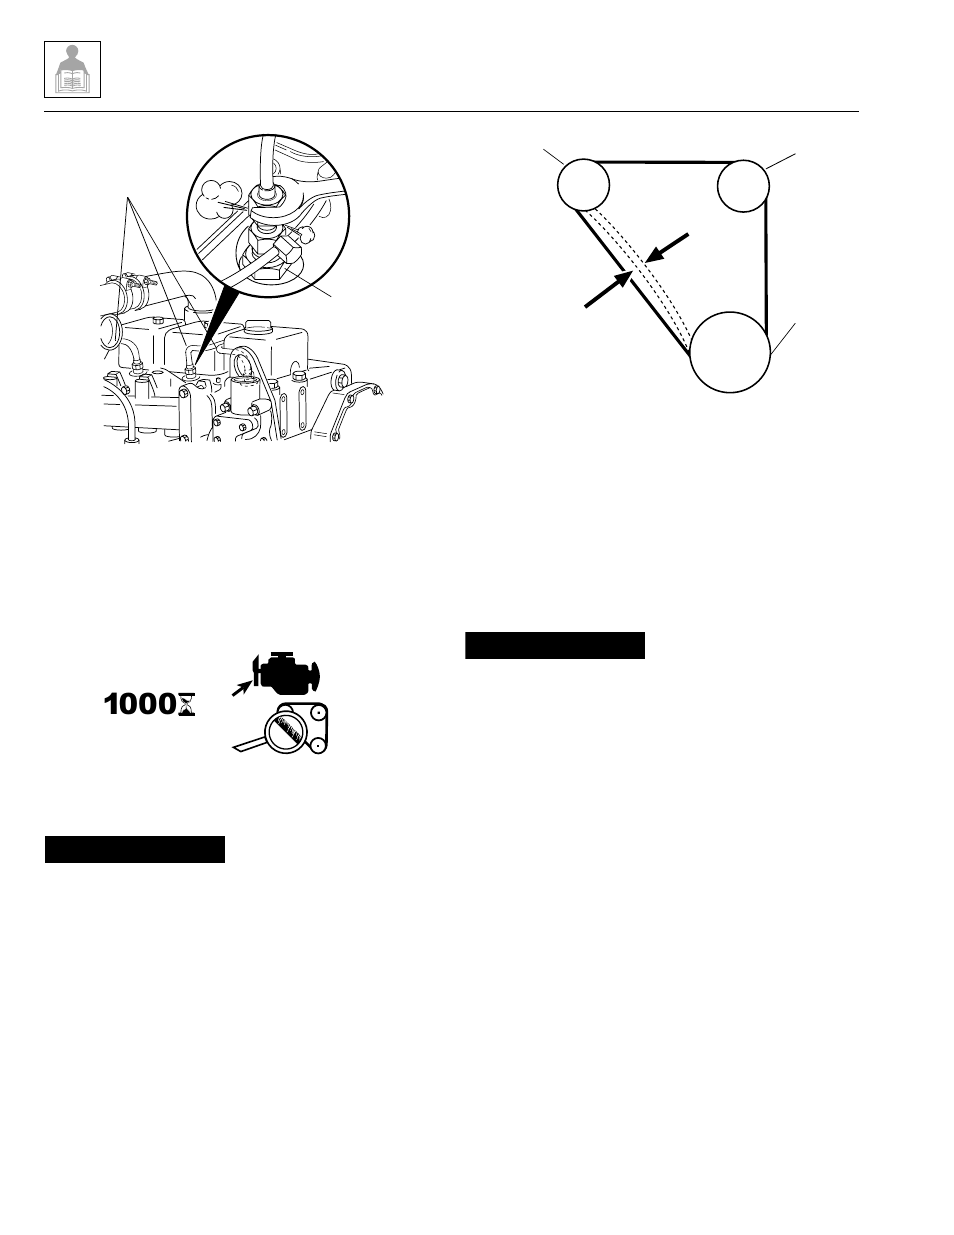 Engine Fan Belt 28 Lt See 2128 Skytrak 3606 Service Manual Diagram